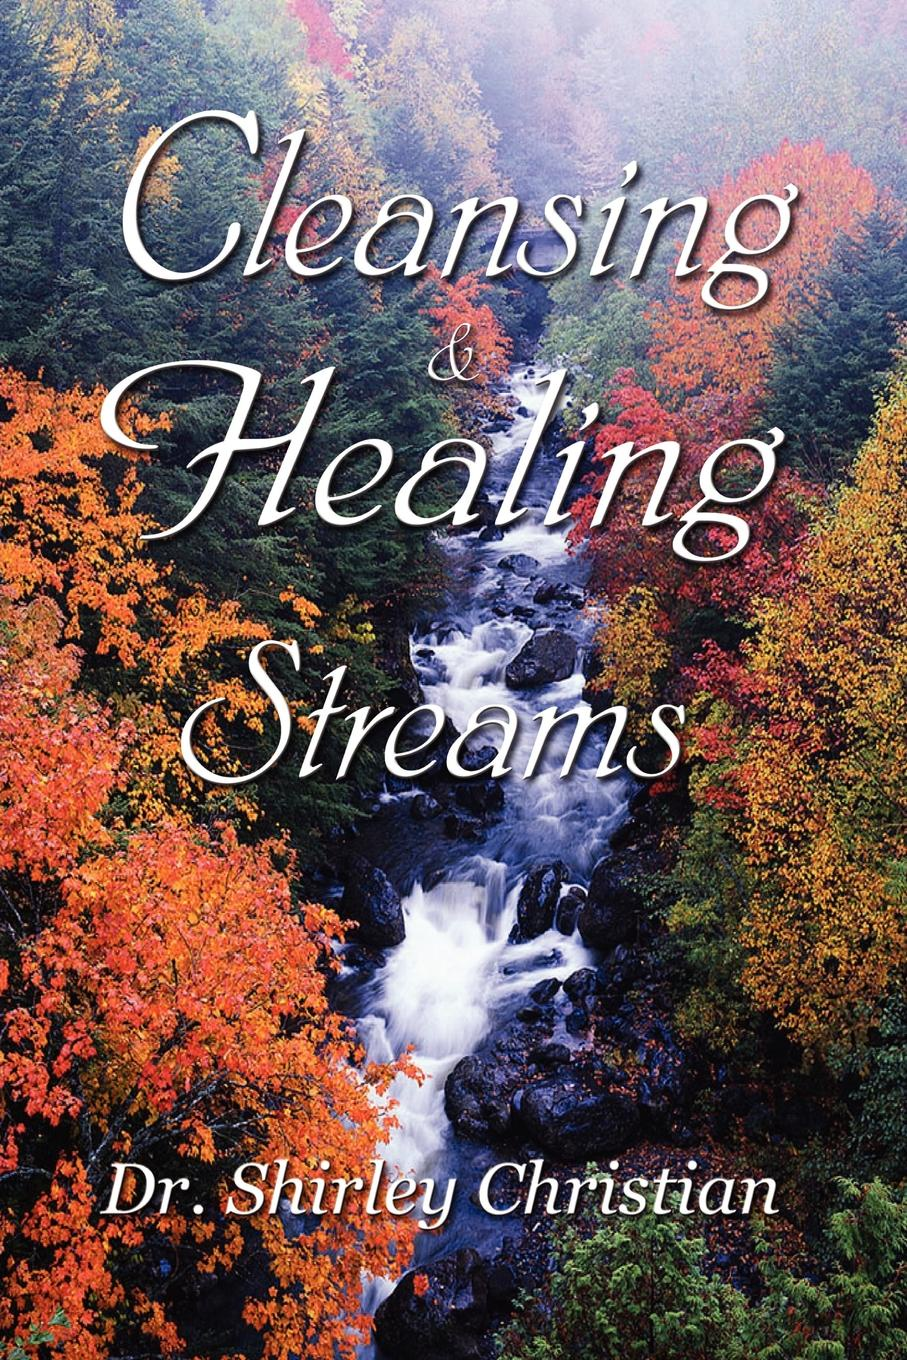 Dr. Shirley Christian Cleansing and Healing Streams dr ken baker friend of god